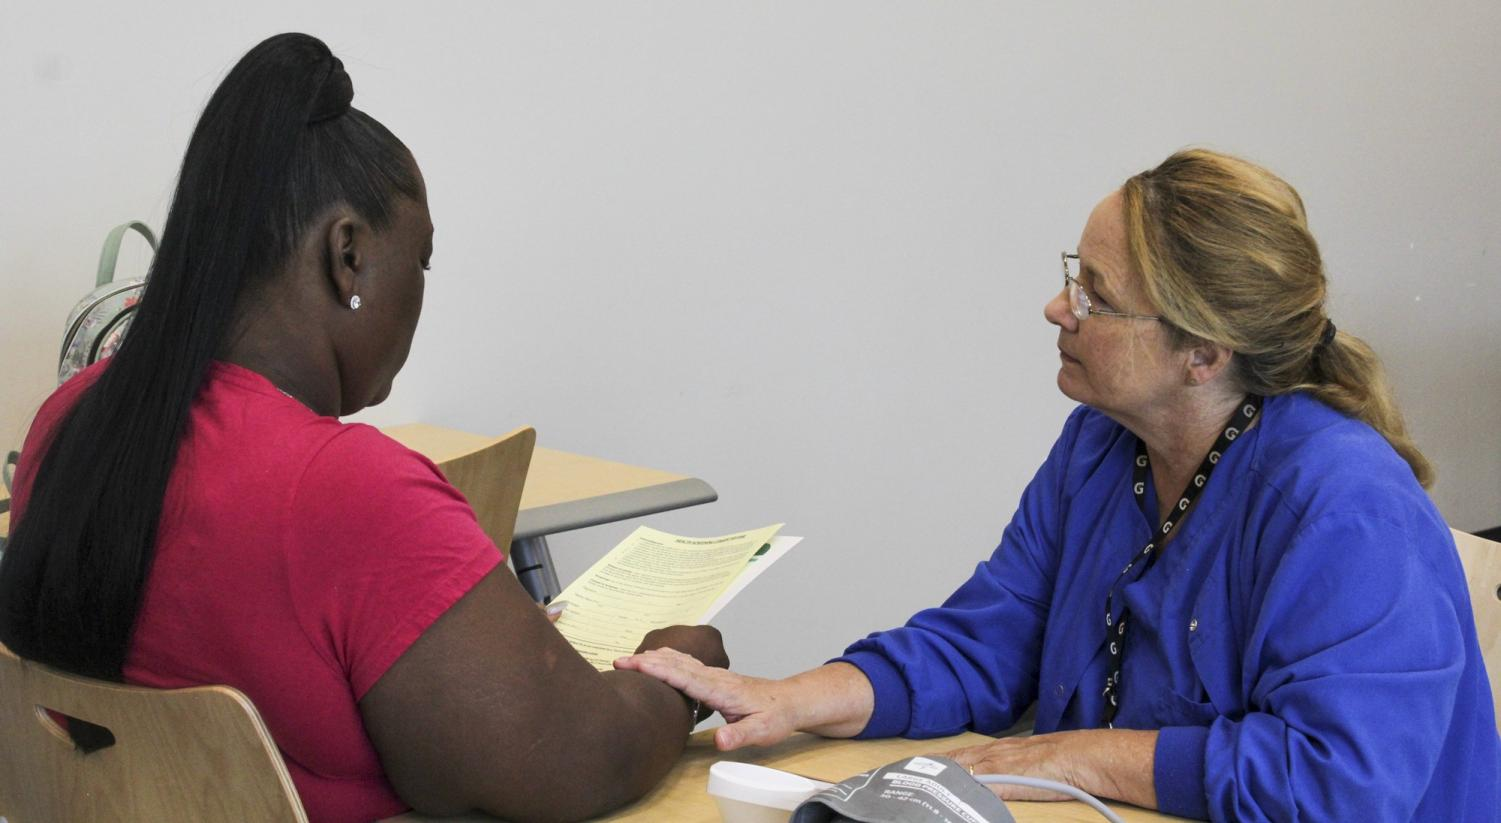 Registered nurse Kathe Haase (right) reviews Shannon Jackson's (left) paperwork with her following a blood pressure screenings. These screenings are provided for free to the public by the city and Touro as part of the Healthy Women New Orleans initiative. Photo credit: Shadera Moore